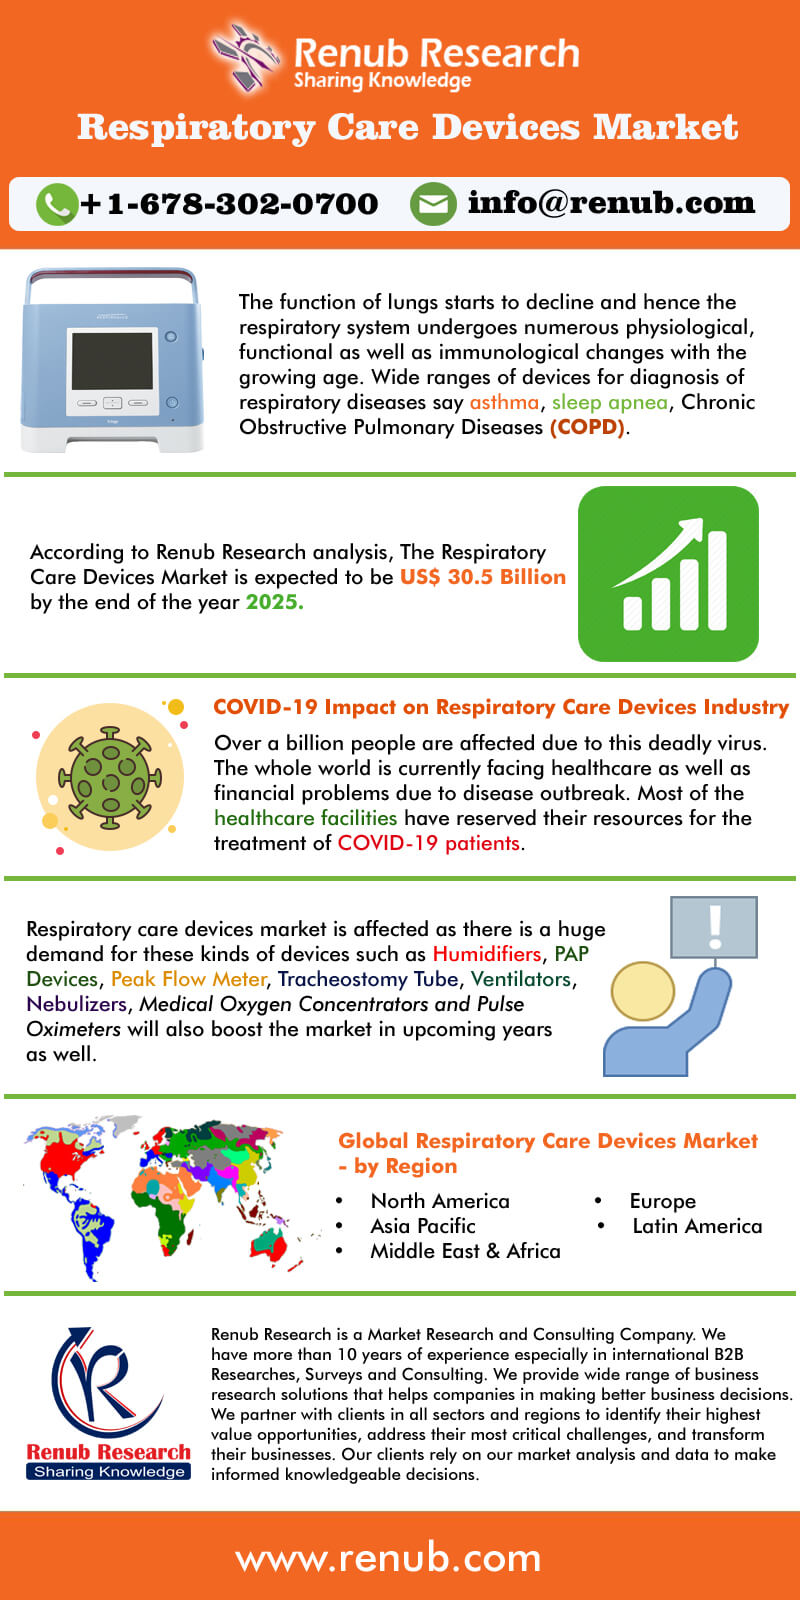 Global Respiratory Care Devices Market